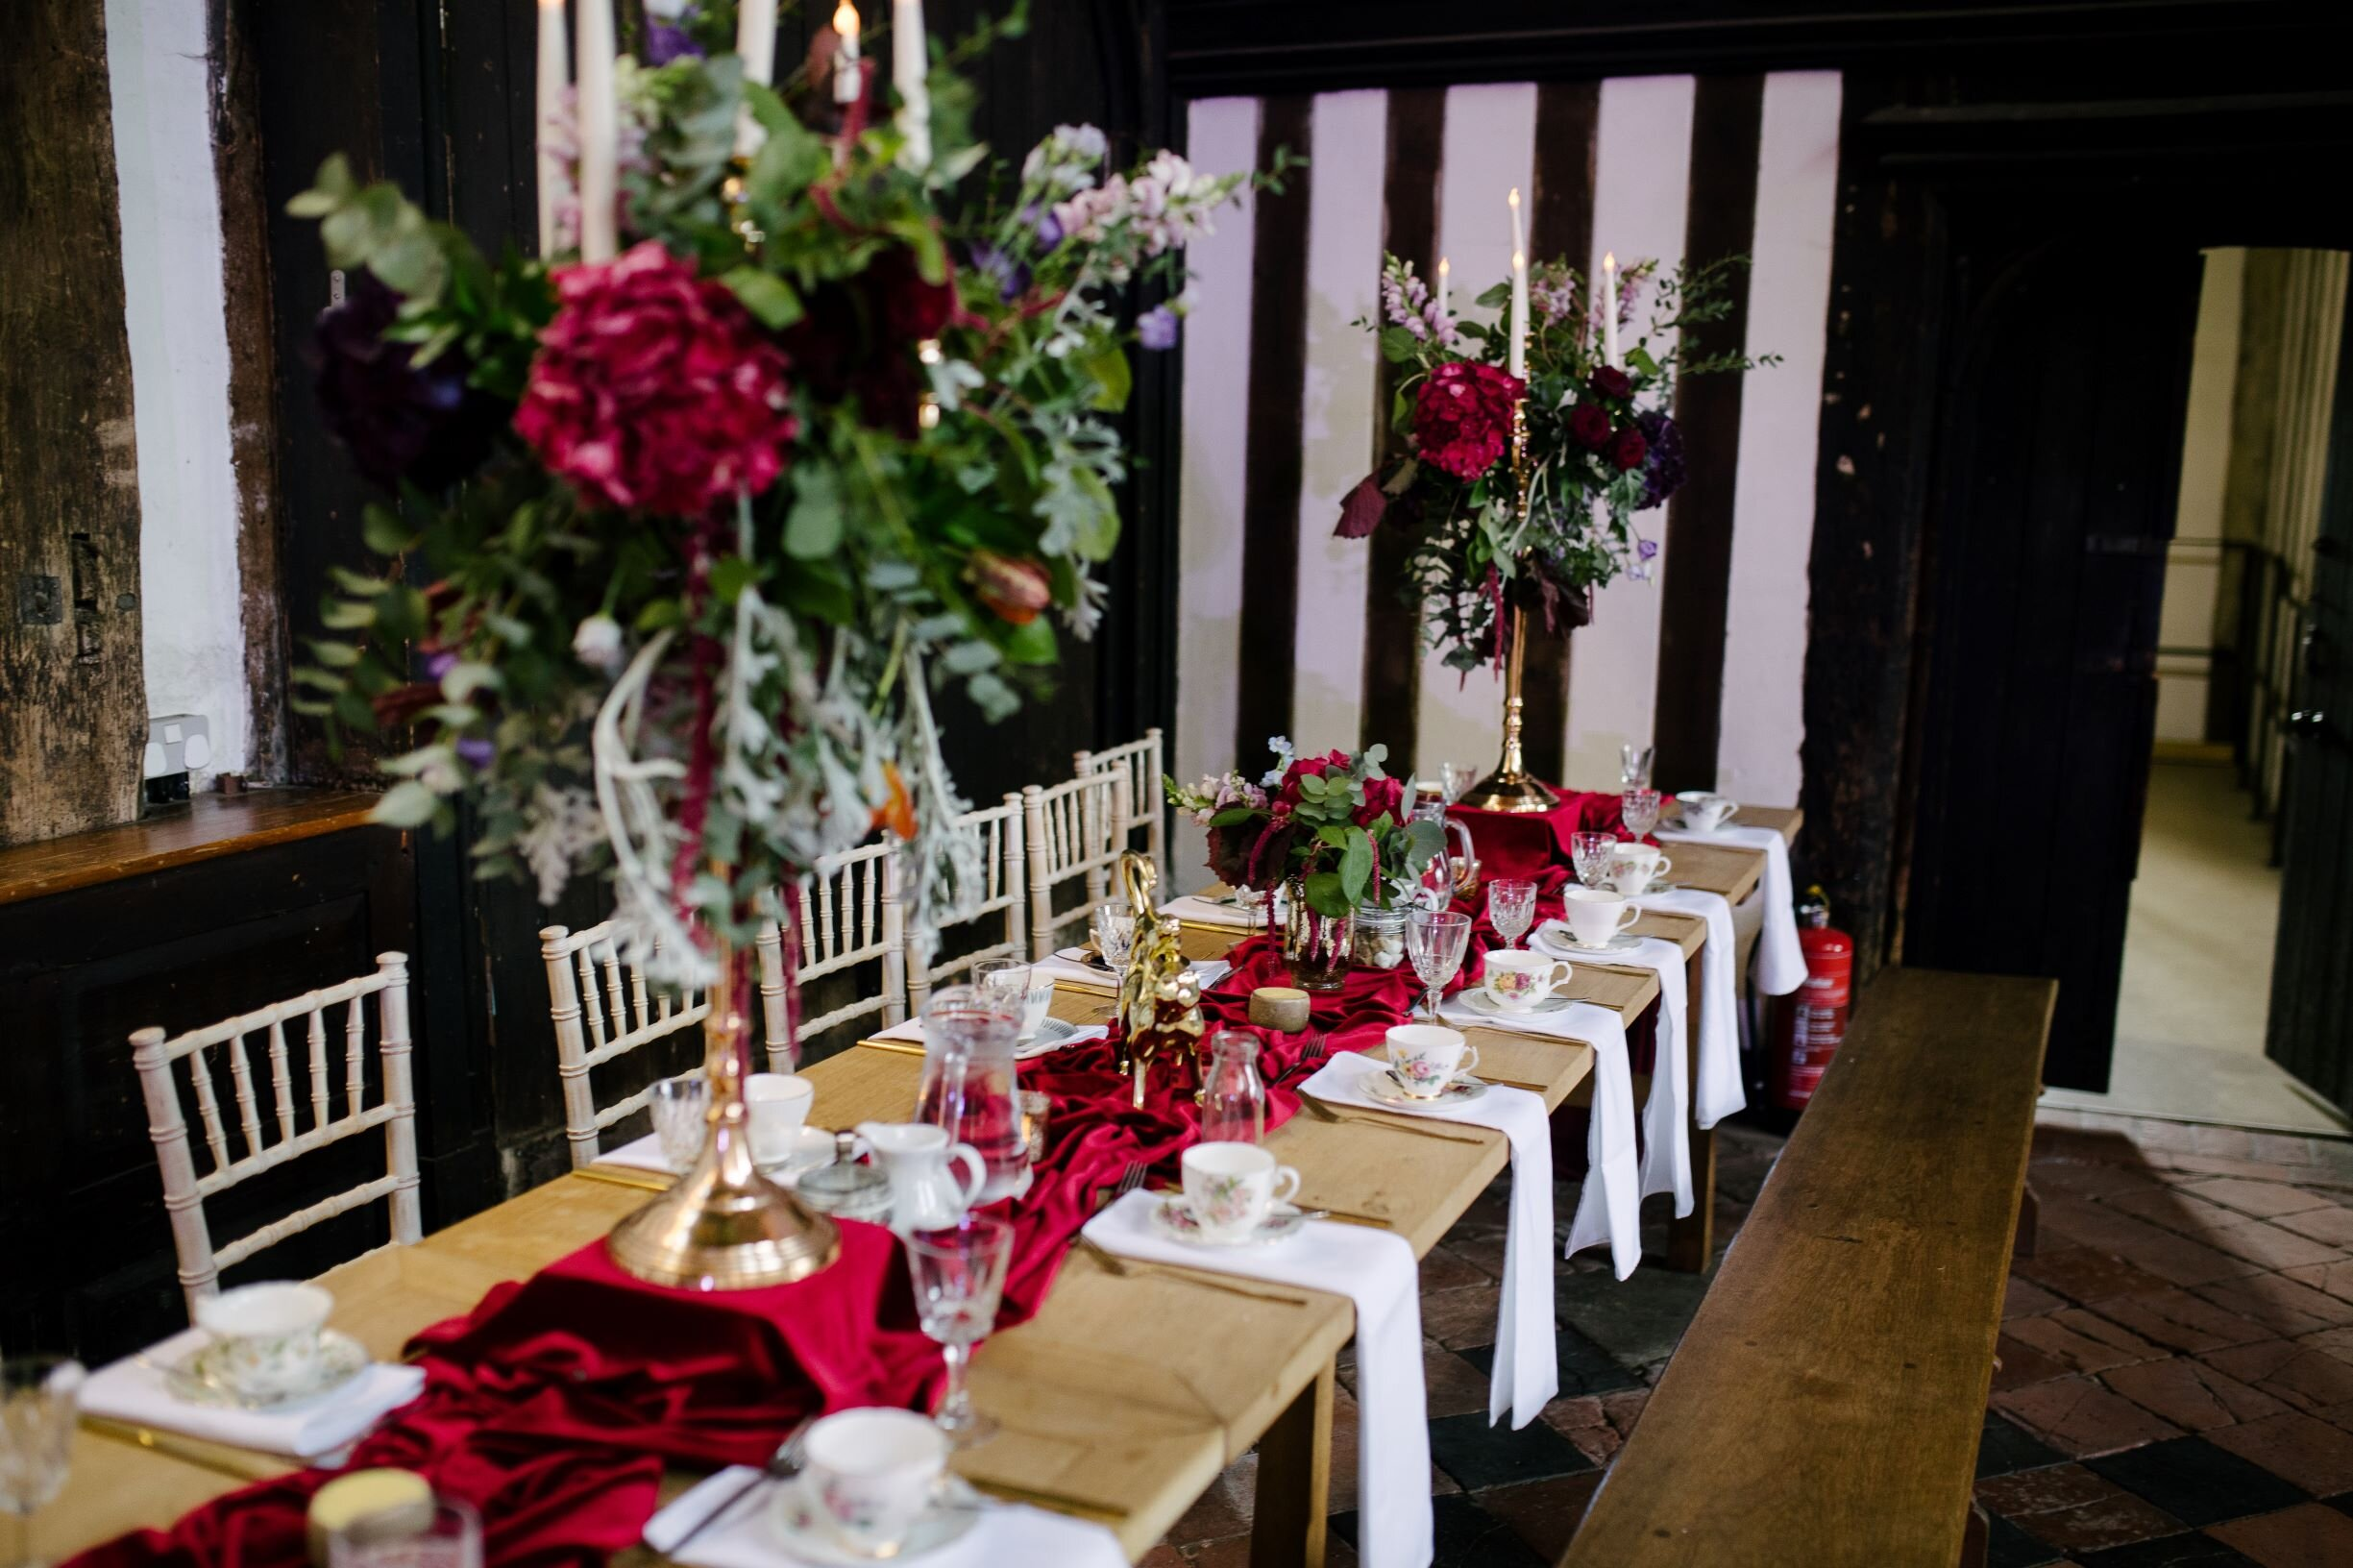 Gold Candelabras with floral decorations